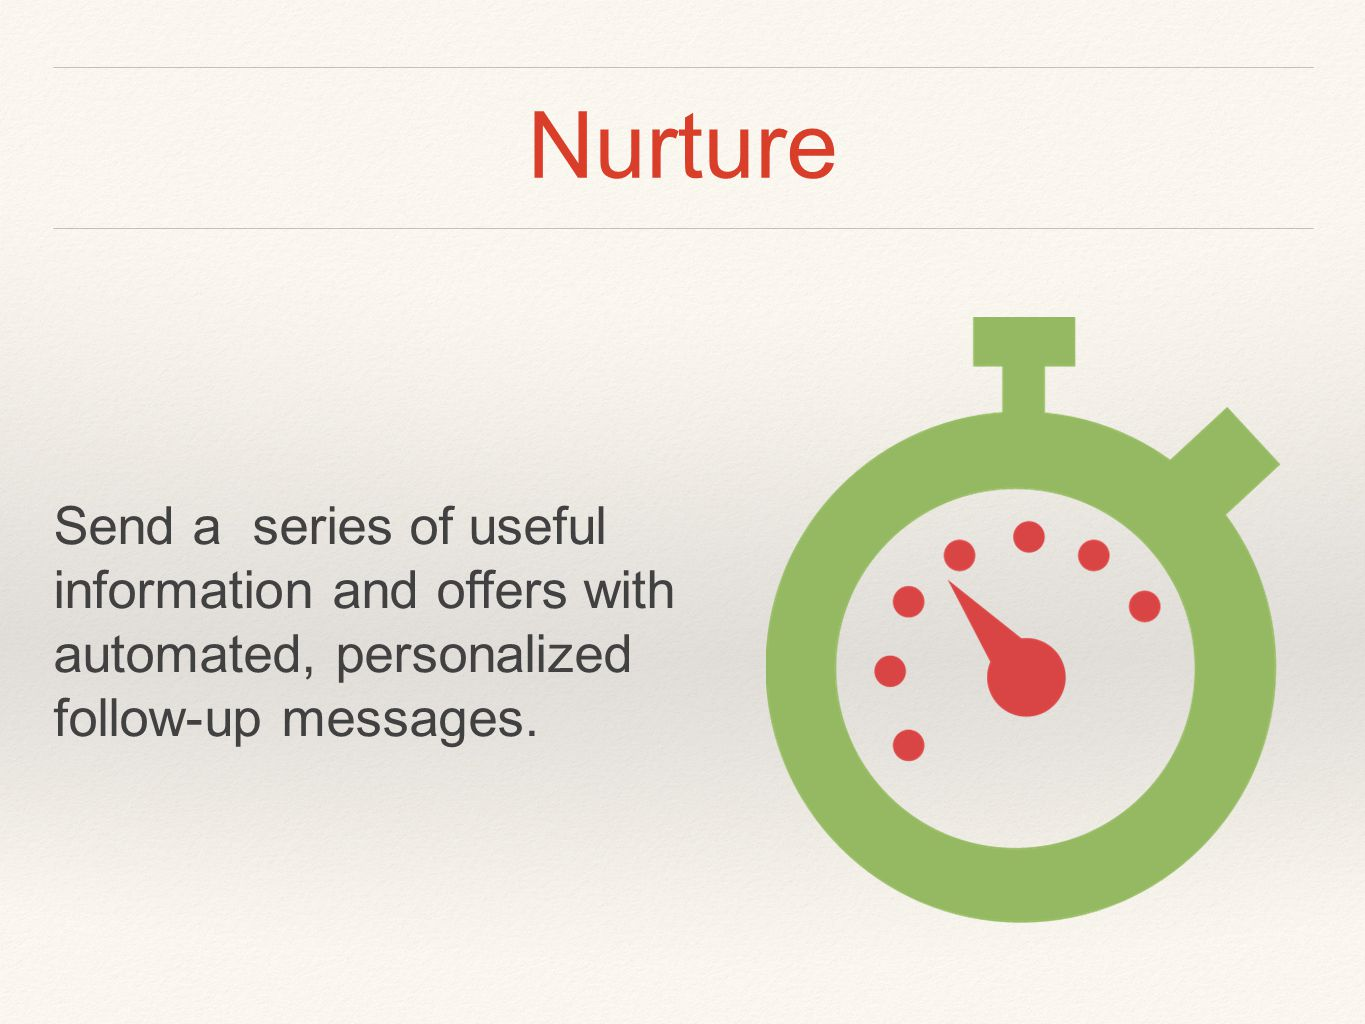 Nurture Send a series of useful information and offers with automated, personalized follow-up messages.